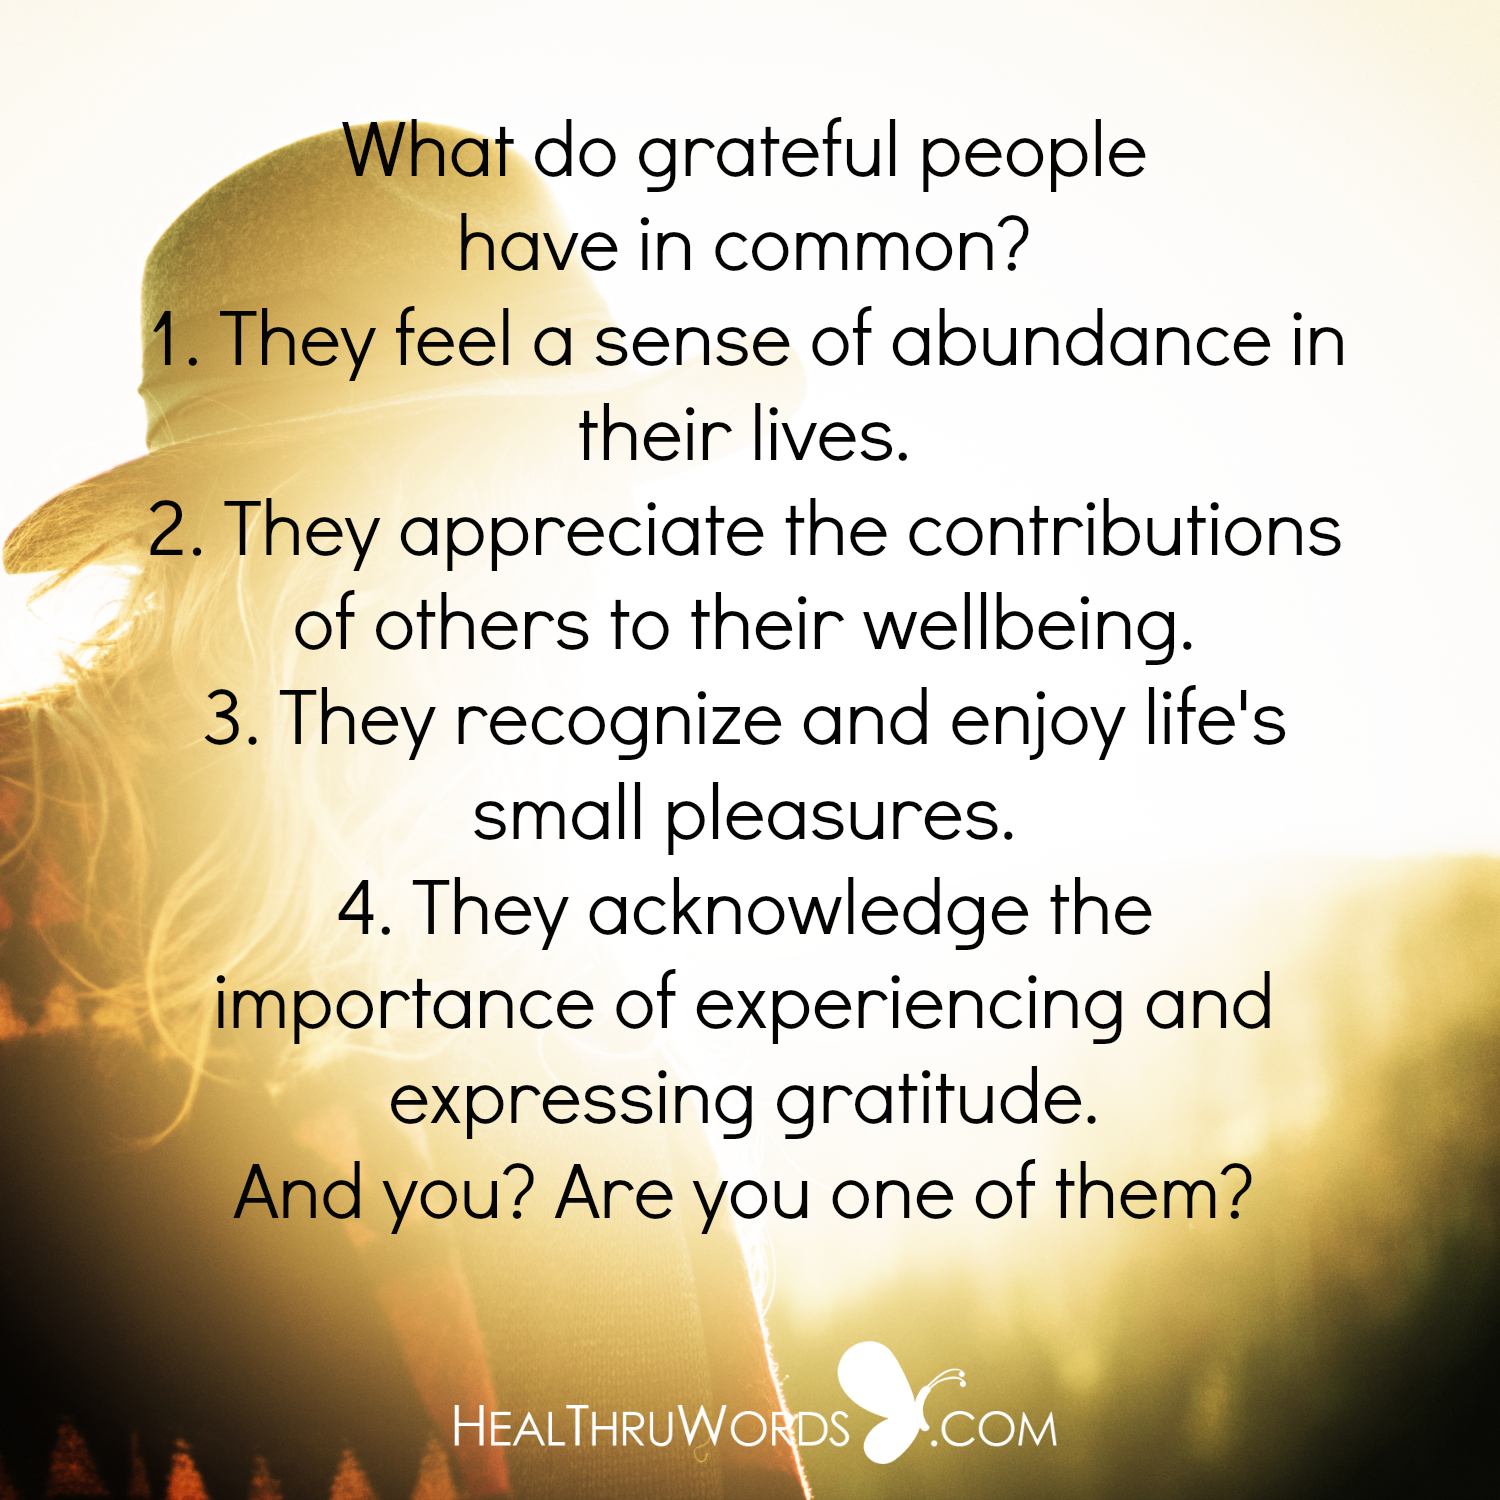 Inspirational Image: Traits of Grateful People